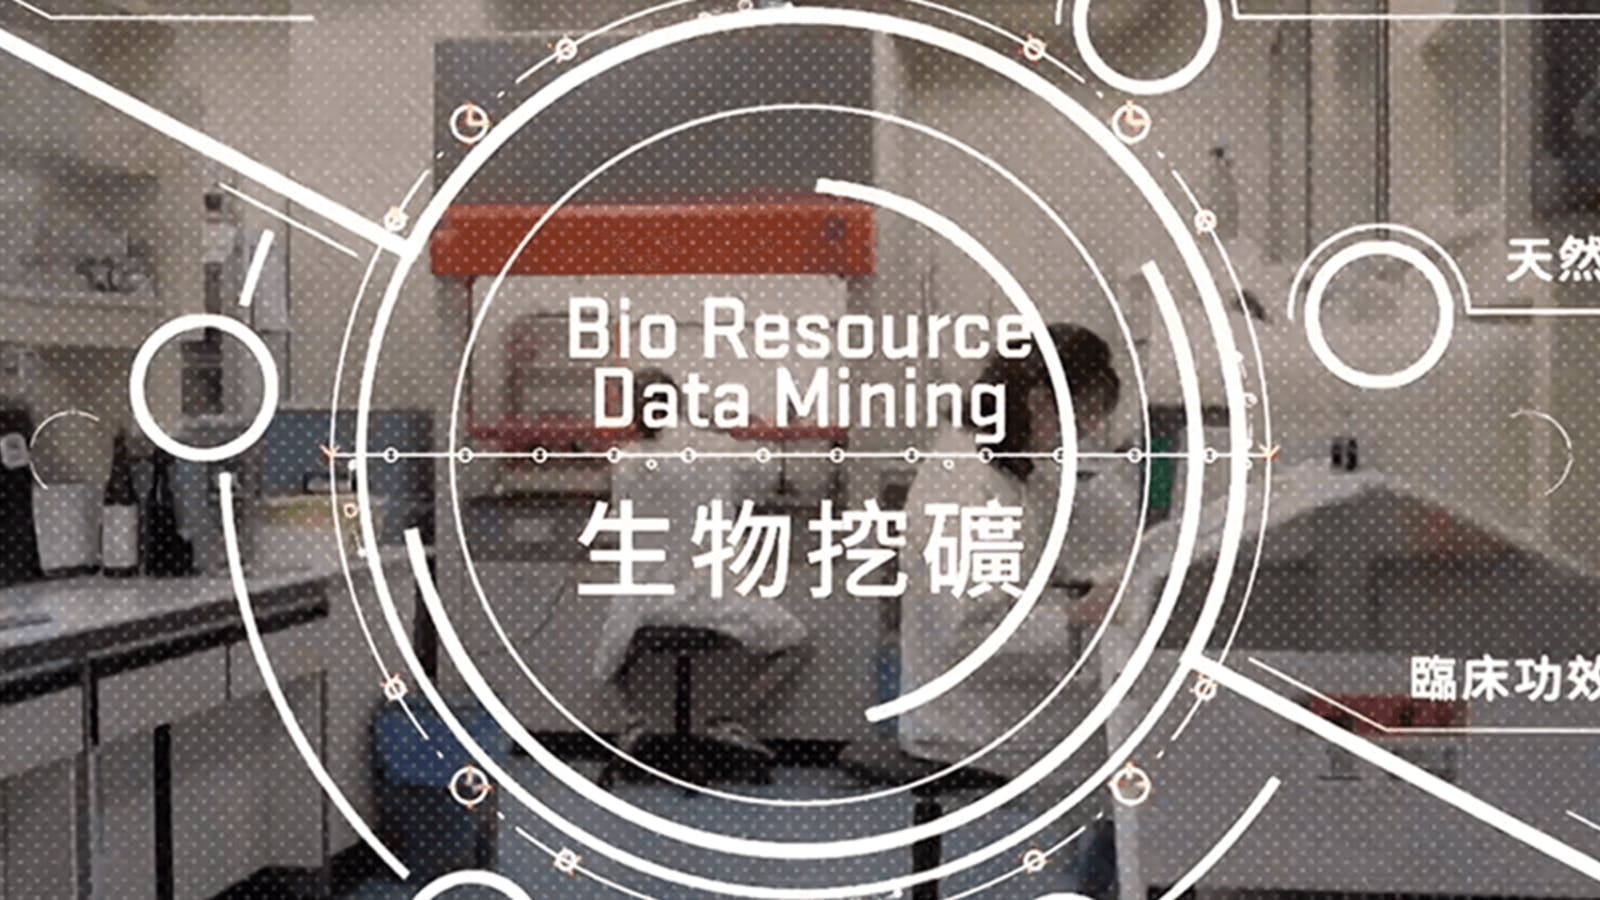 TCI Bioresource Data Mining